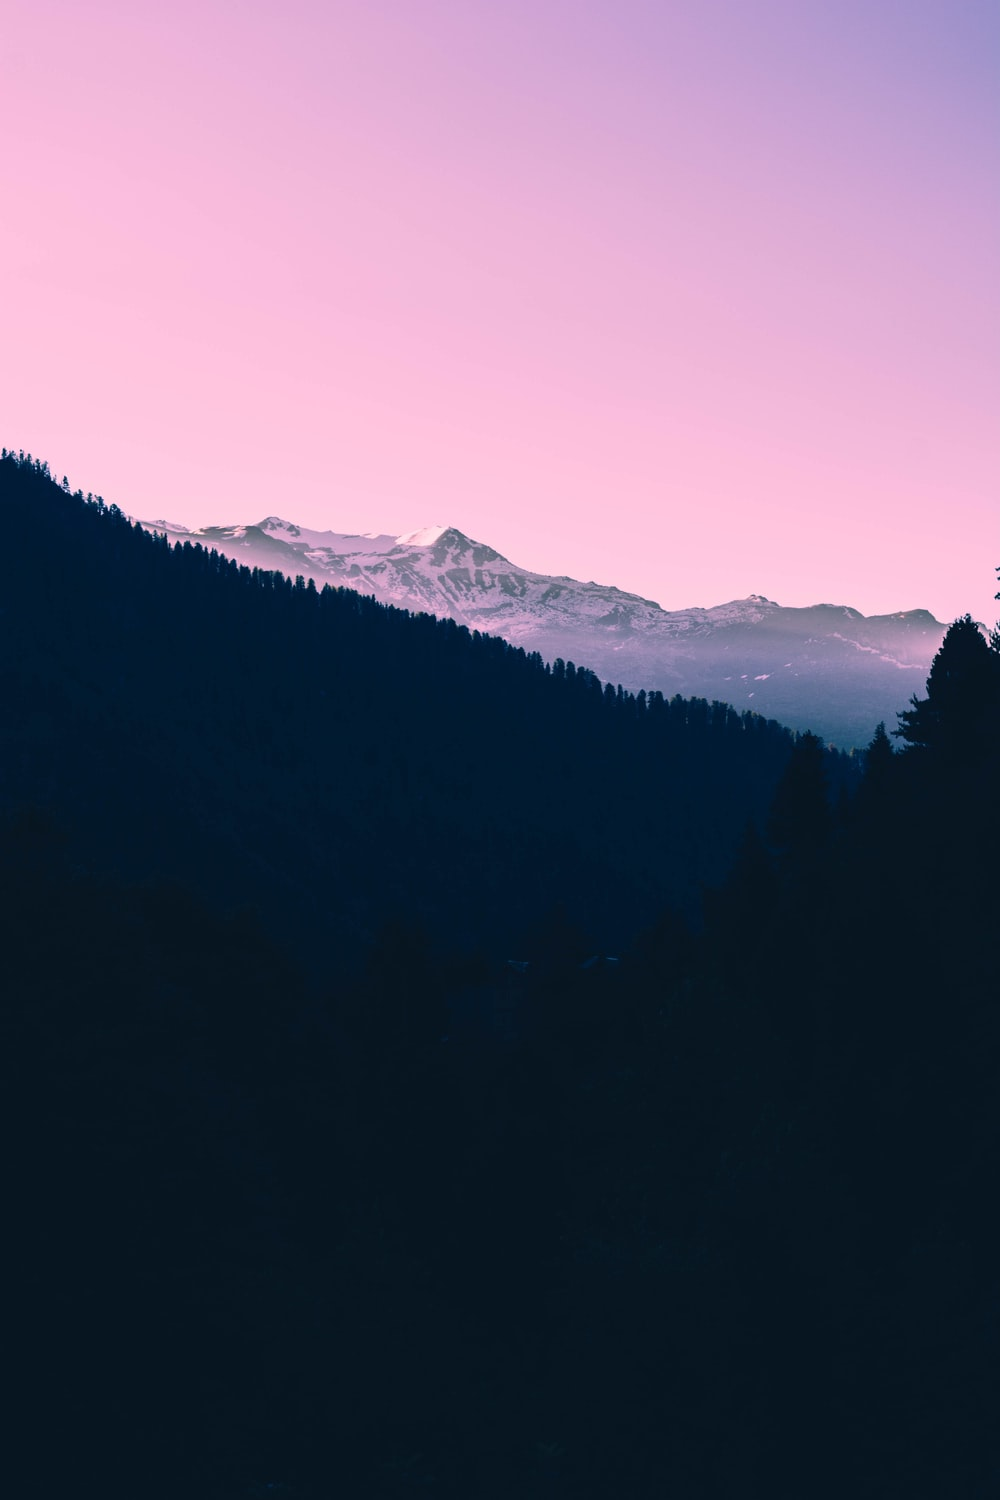 Tumblr background pictures download free images on unsplash a dark sunset over snow covered mountains and a pink sky voltagebd Gallery